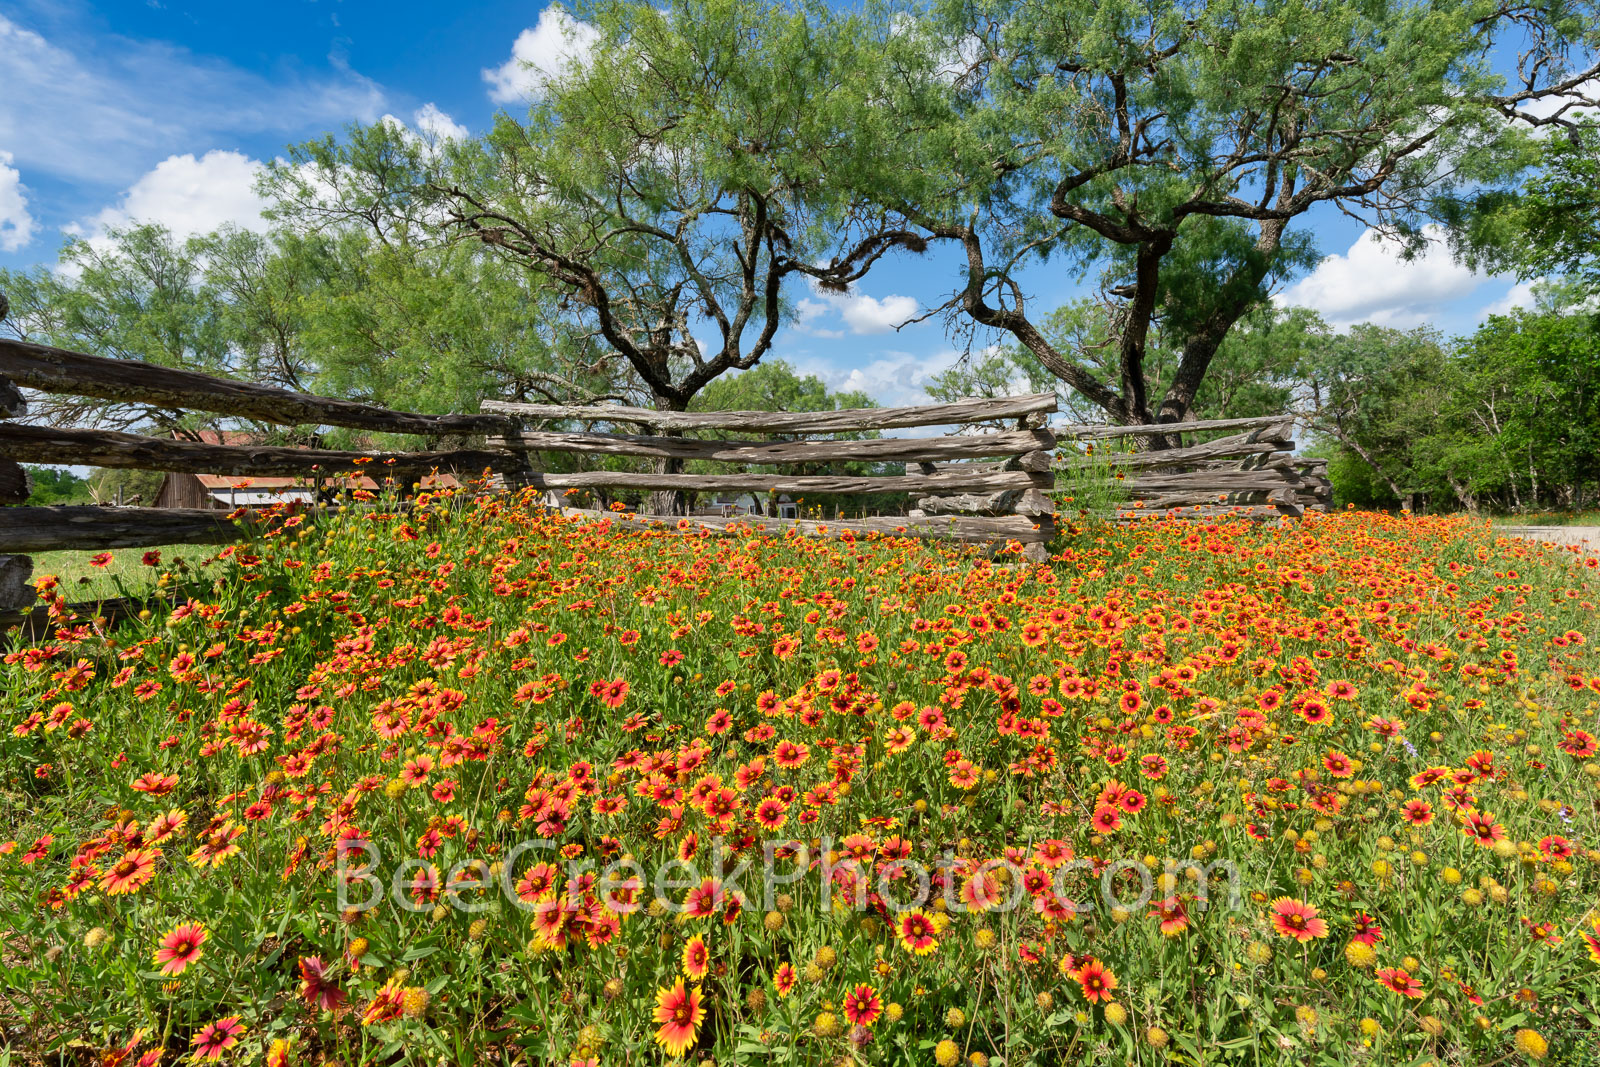 Texas Hill County Indian Blankets - We came across these wonderful bunch of indian blankets, also called firewheels wildflowers...